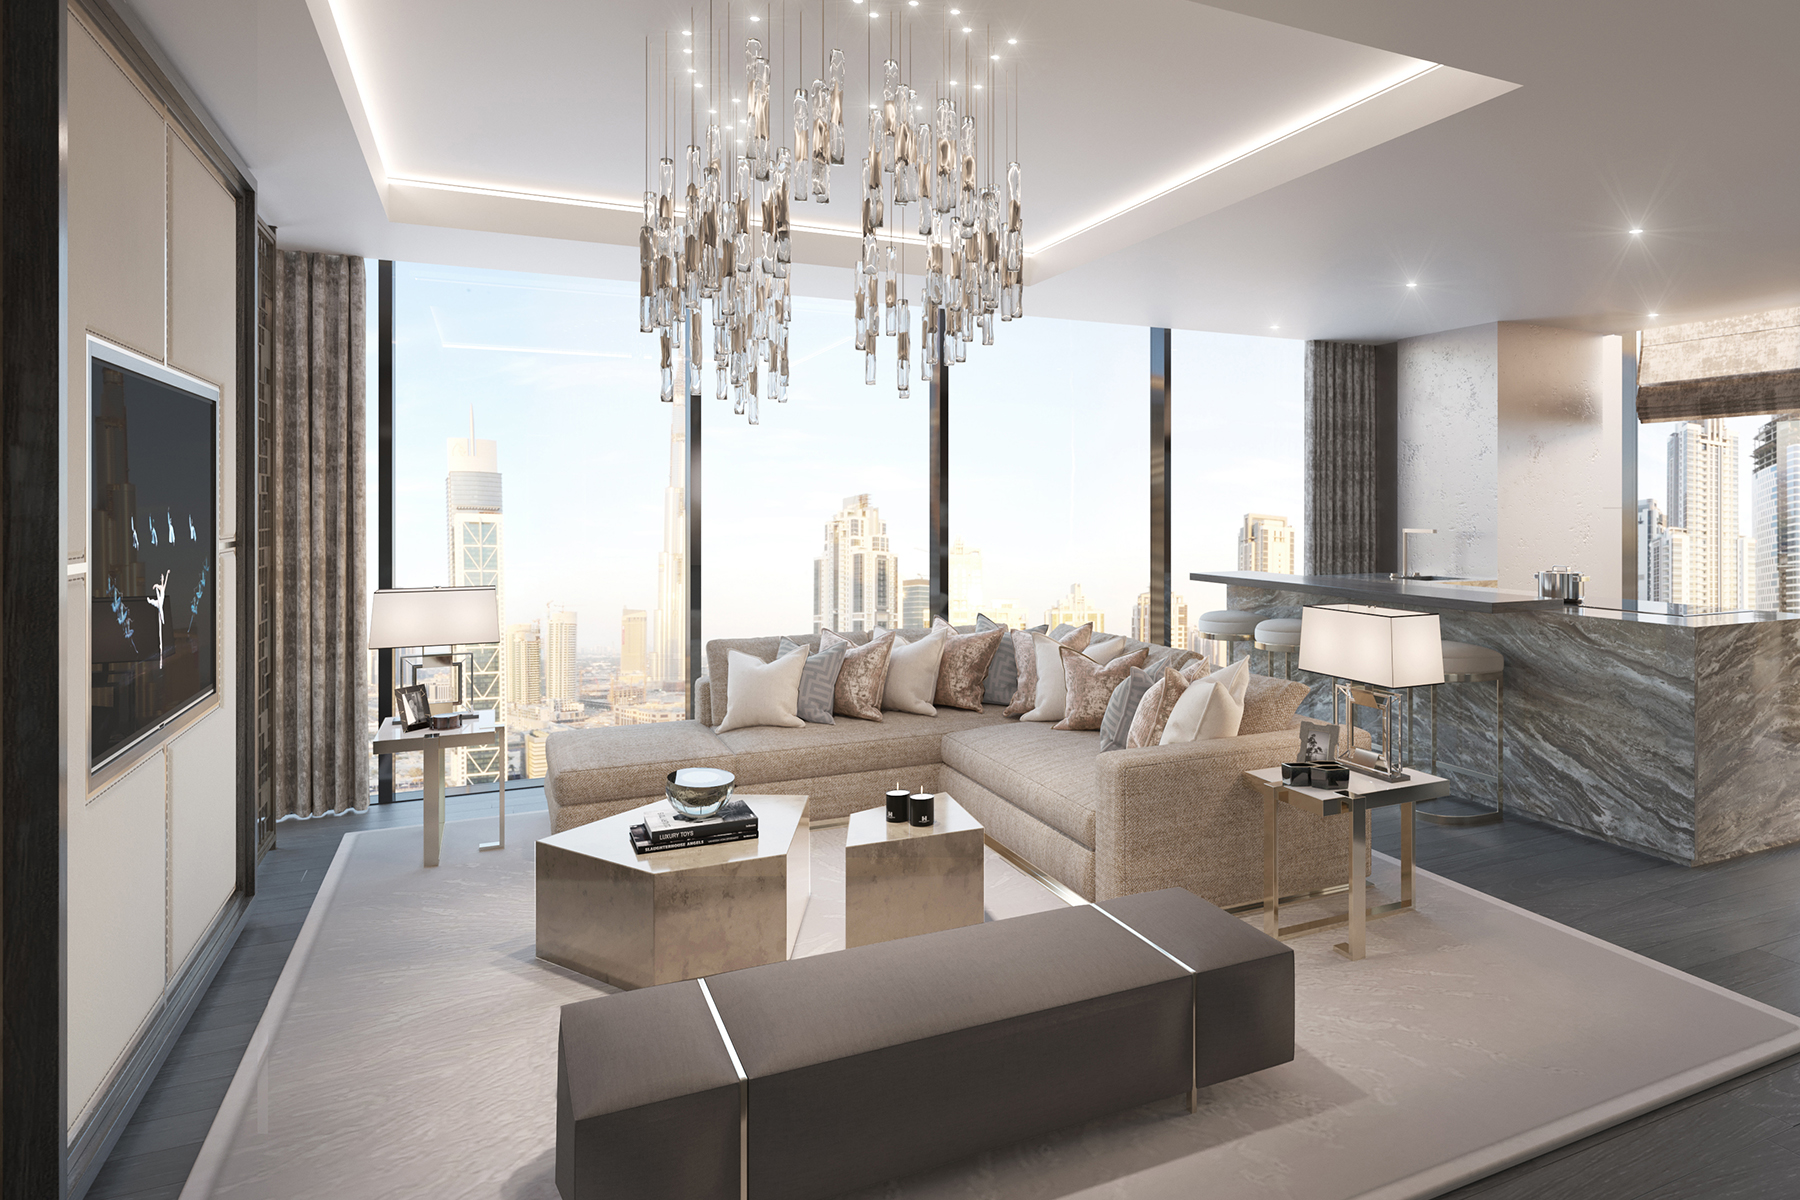 Apartment for Sale at One Palm - Duplex Apartment Dubai, Dubai United Arab Emirates